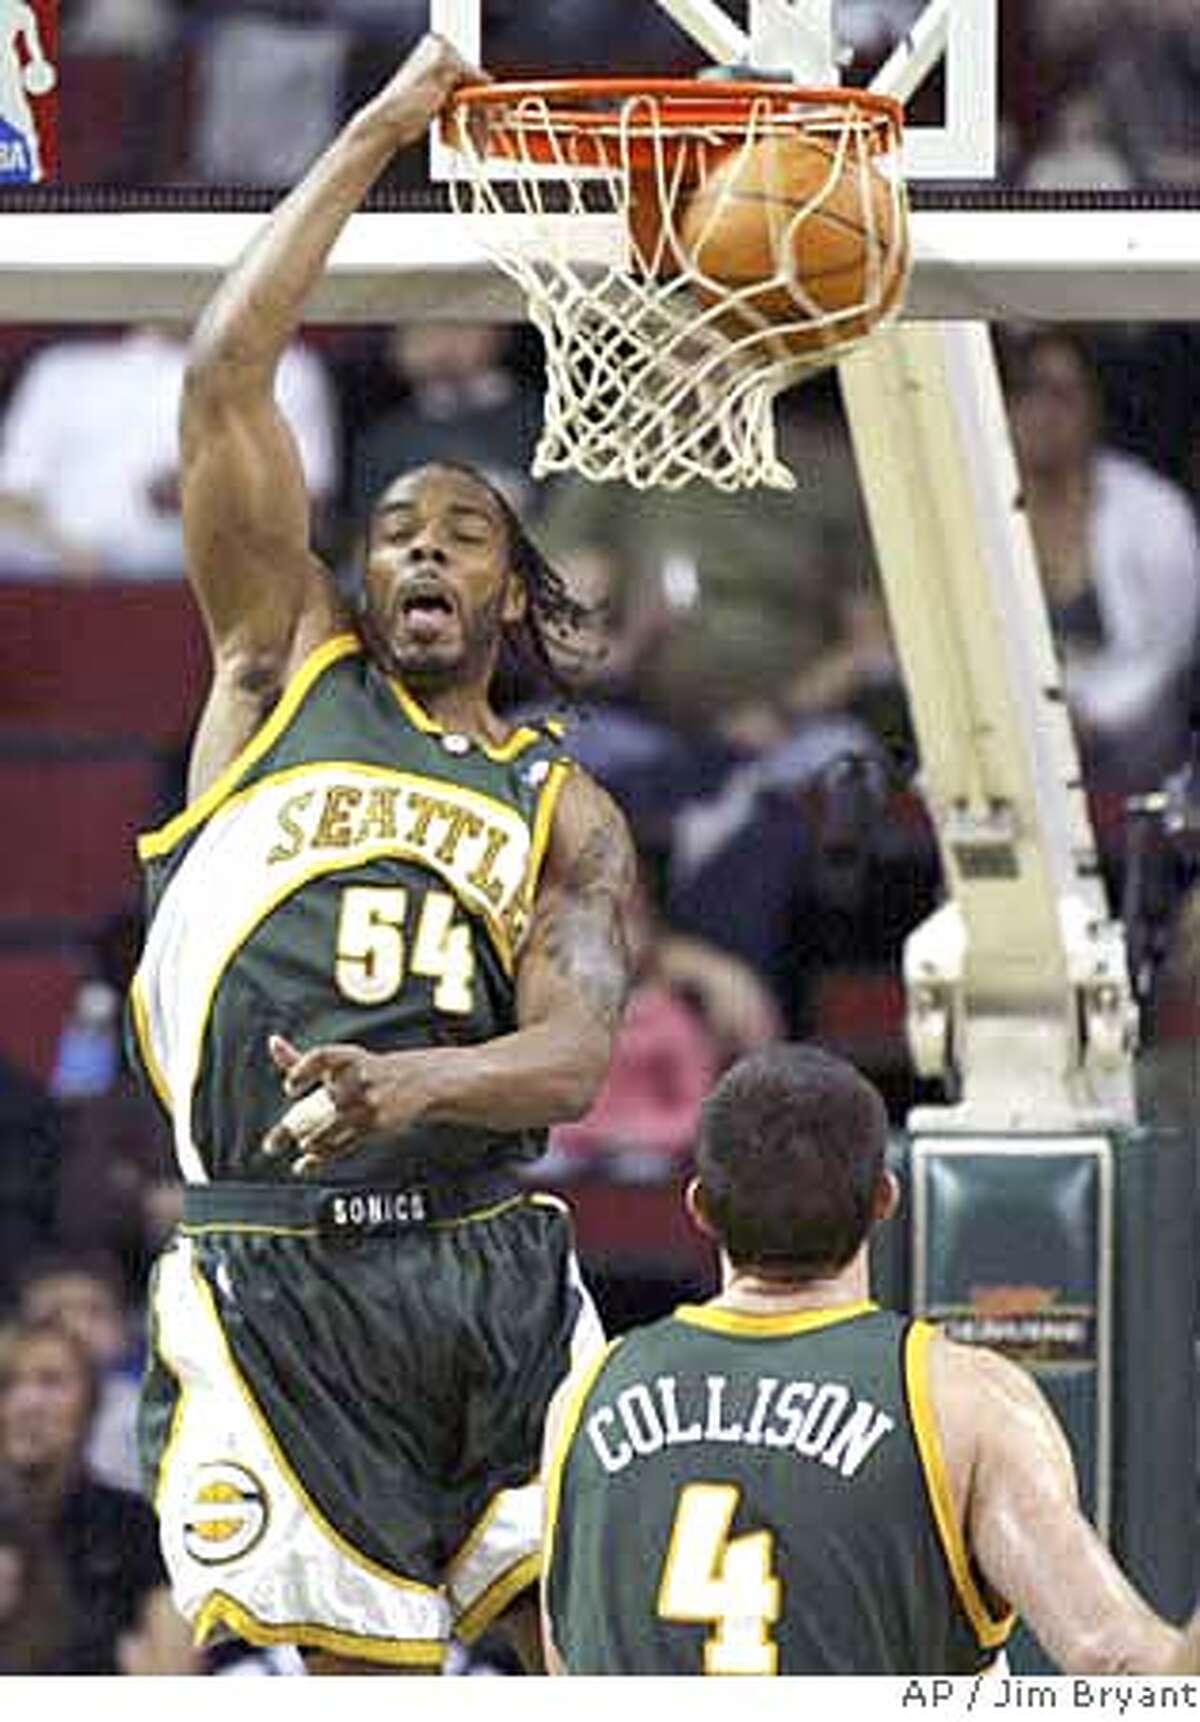 Seattle SuperSonics' Chris Wilcox dunks against the Golden State Warriors during the first half of an NBA basketball game Saturday, March 17, 2007, in Seattle. SuperSonics' Nick Collison watches. (AP Photo/Jim Bryant)